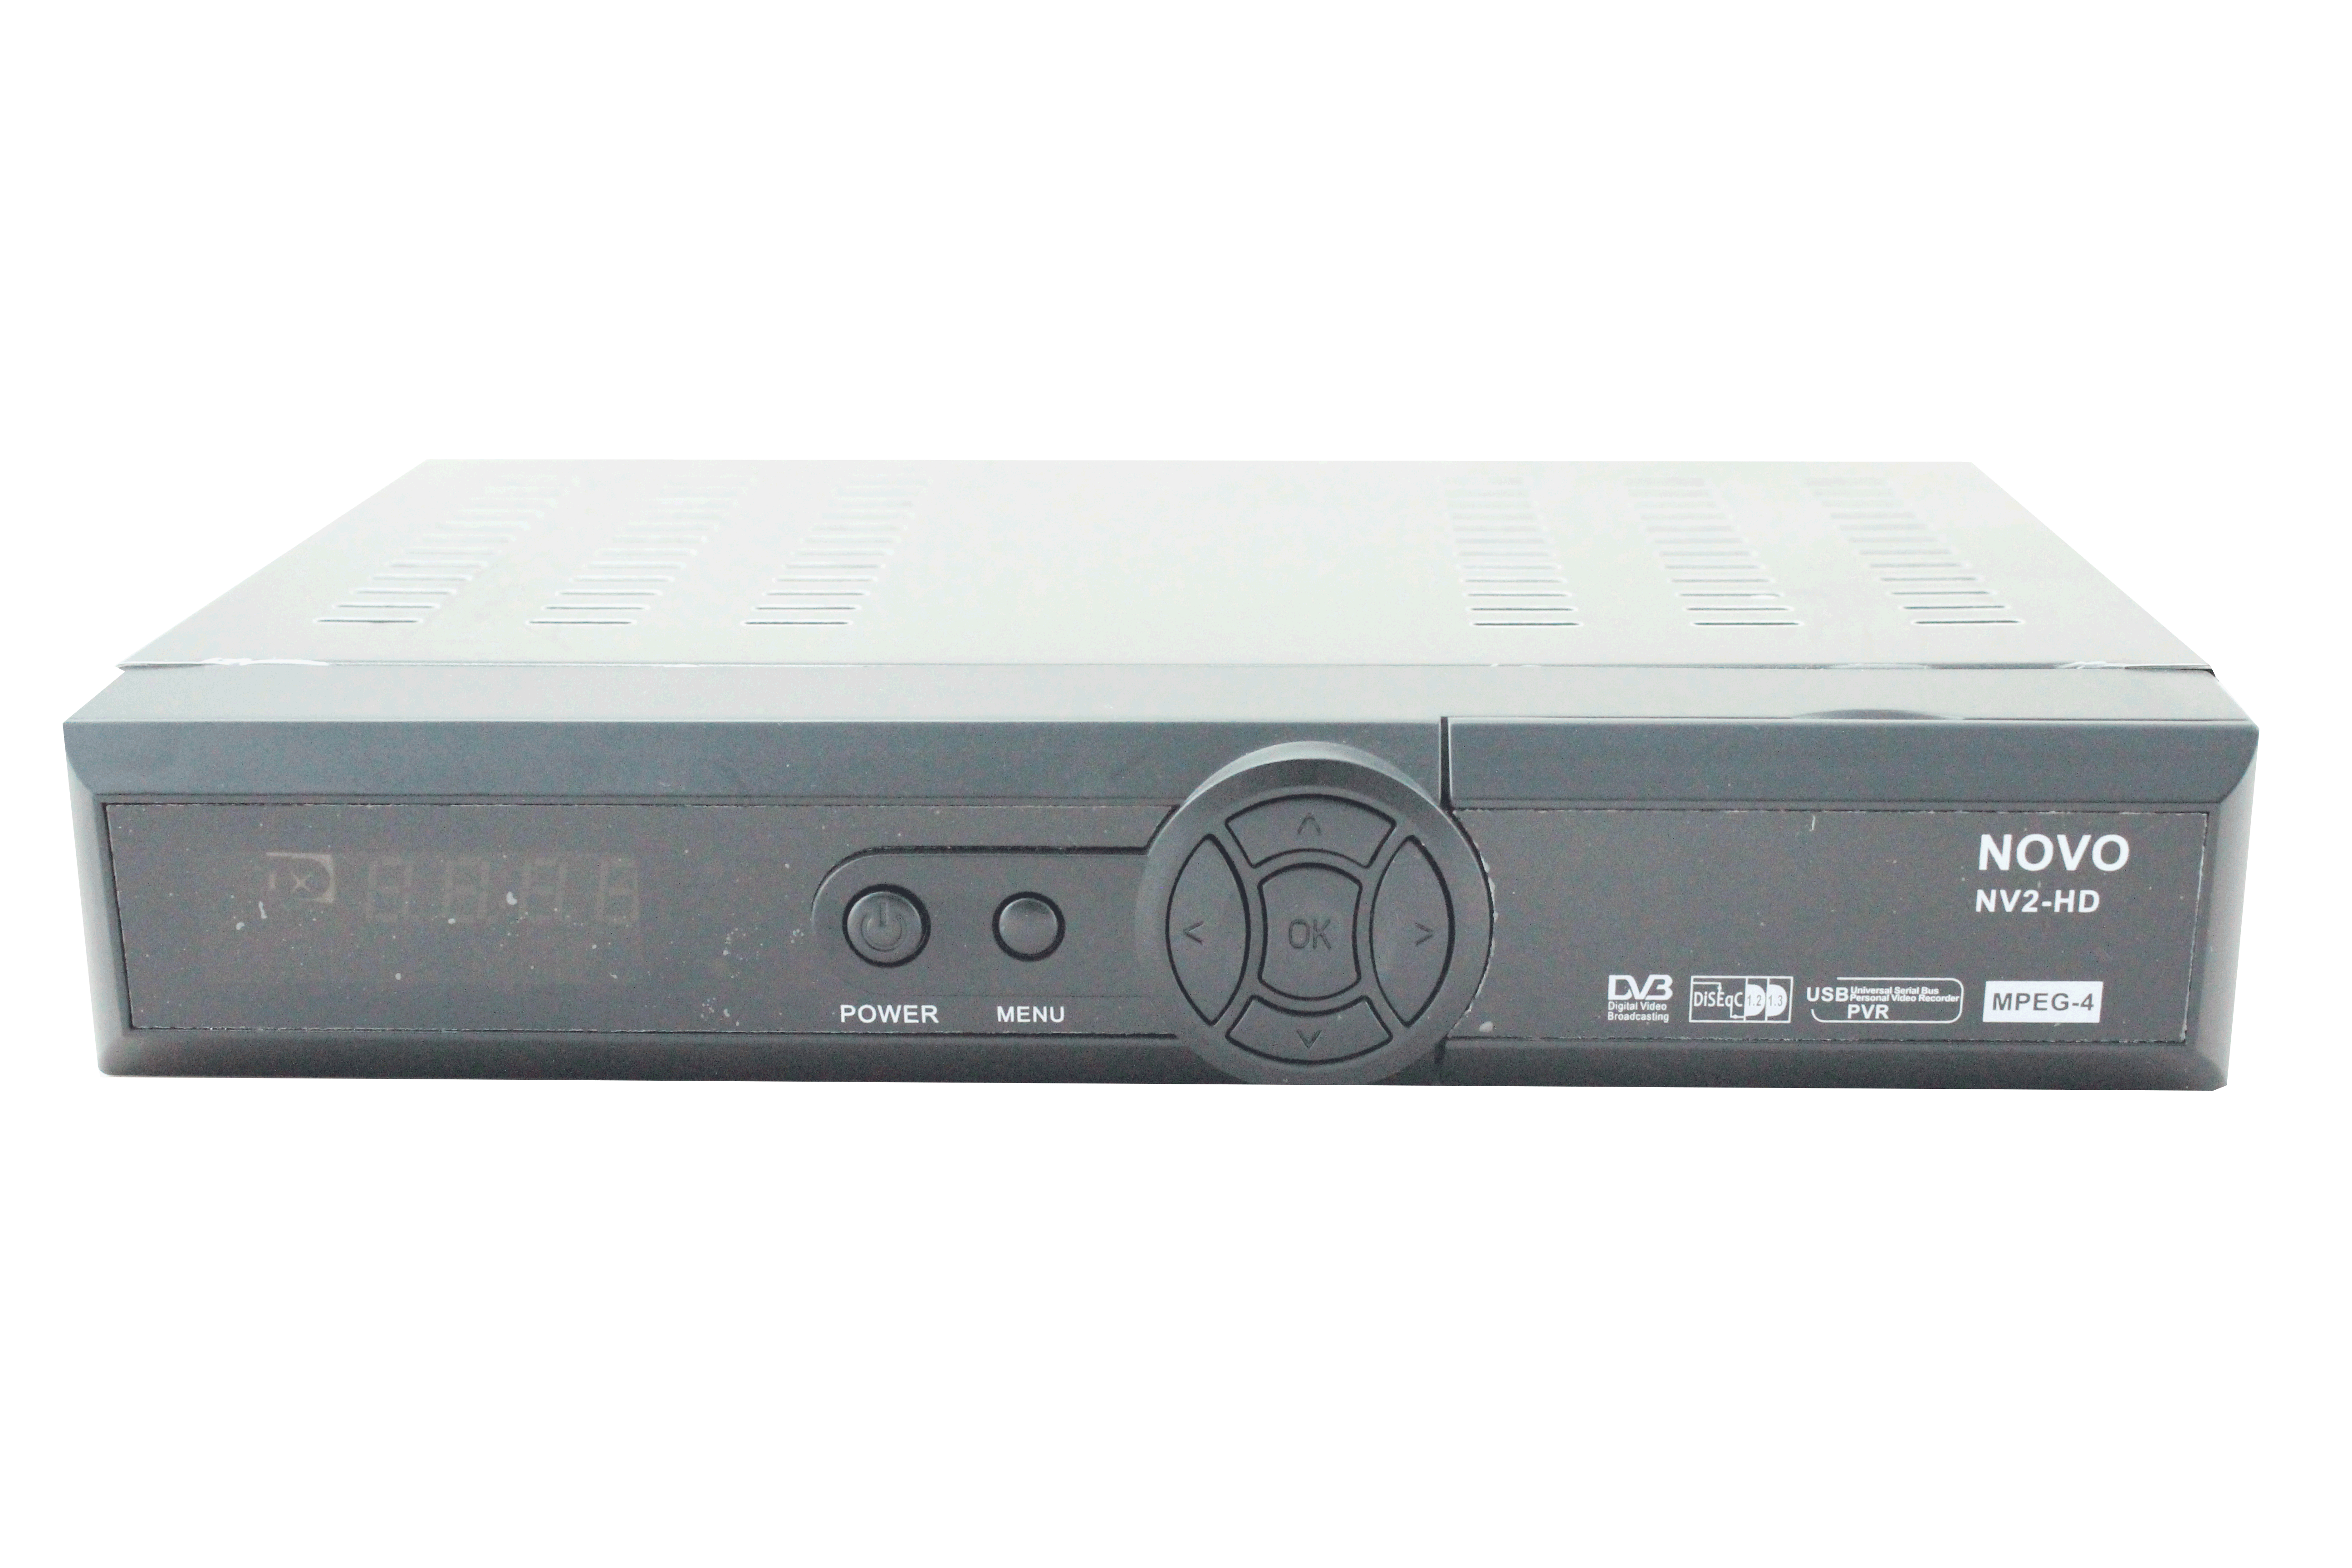 Digitronic 1000 HD Satellite Receiver MPEG4 DVBS2 PVR Media Player -  Digitronic